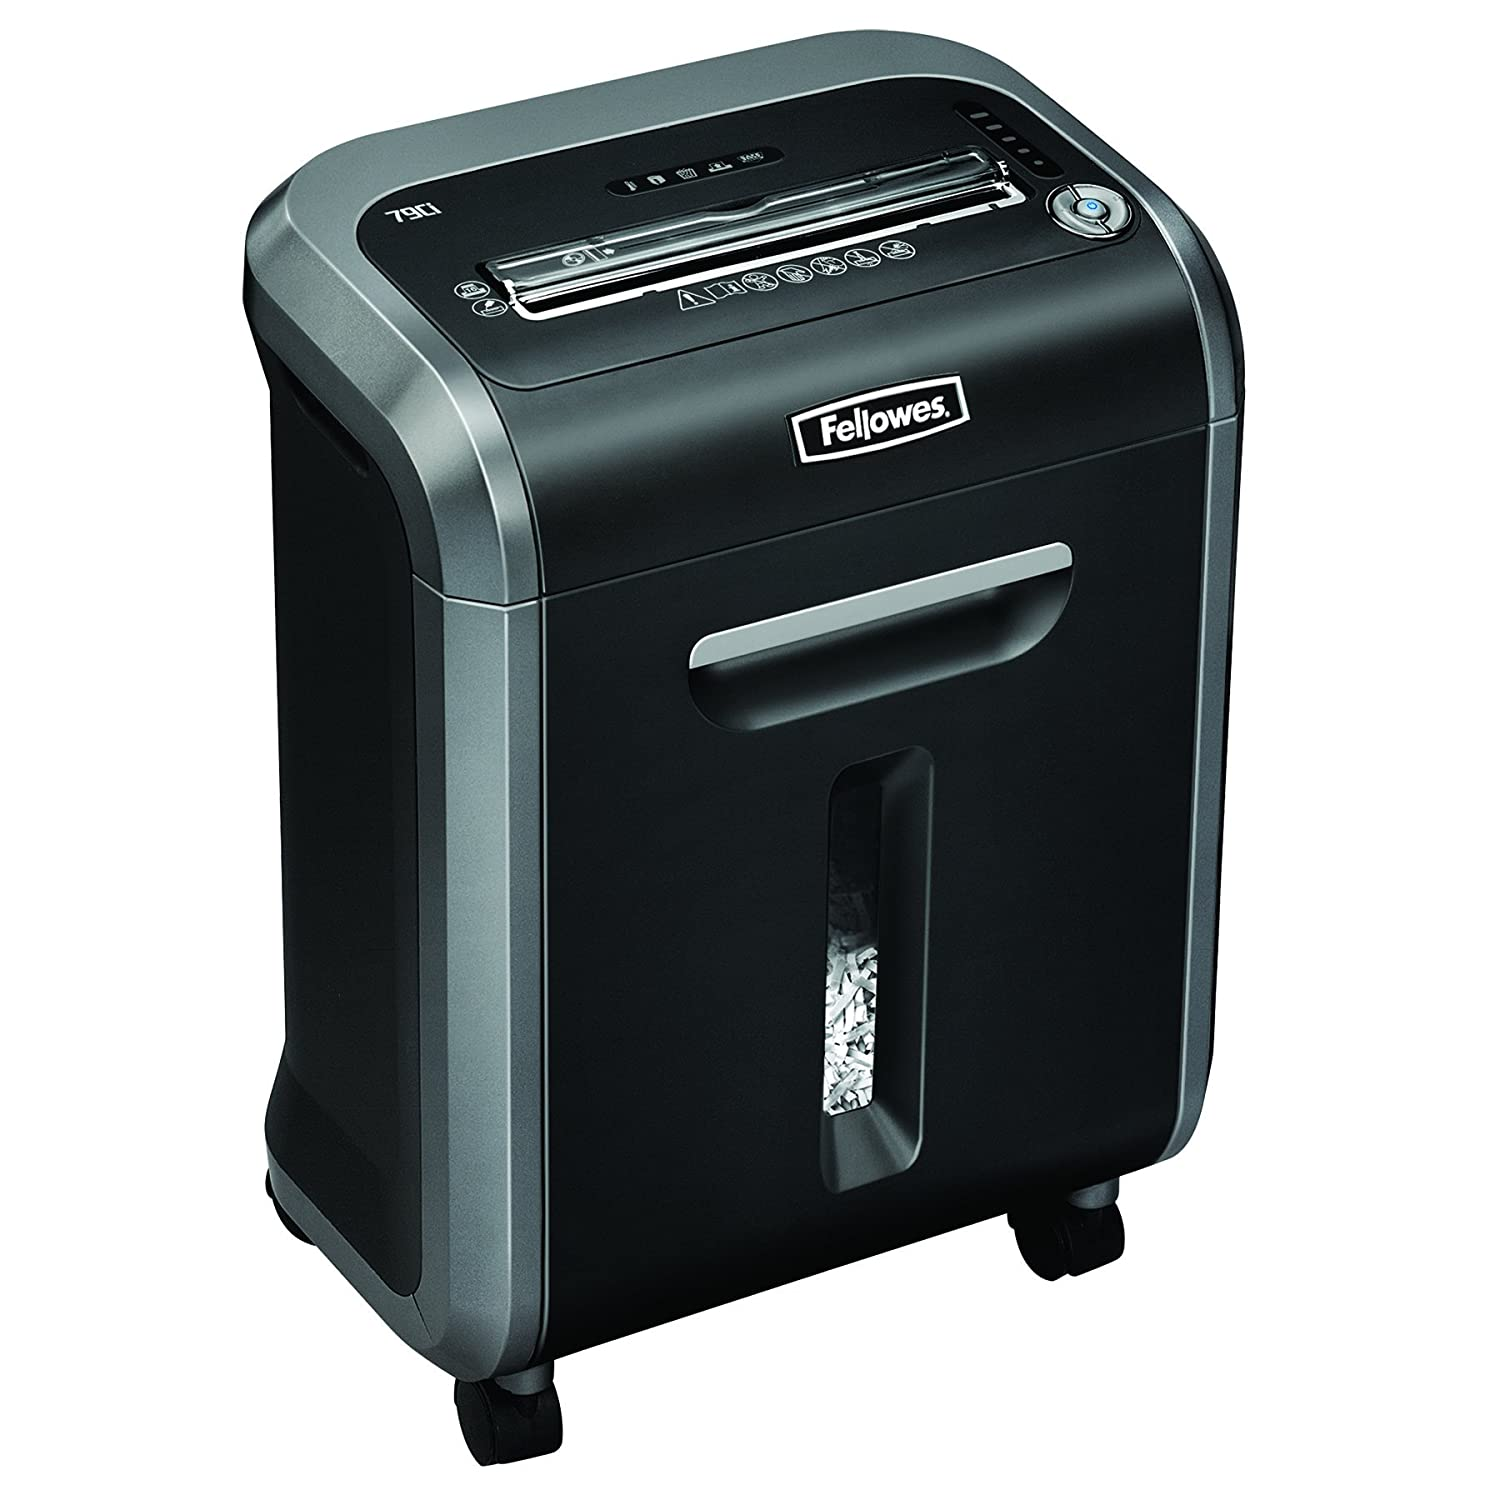 Fellowes Ci Destructora trituradora de papel hojas color negro